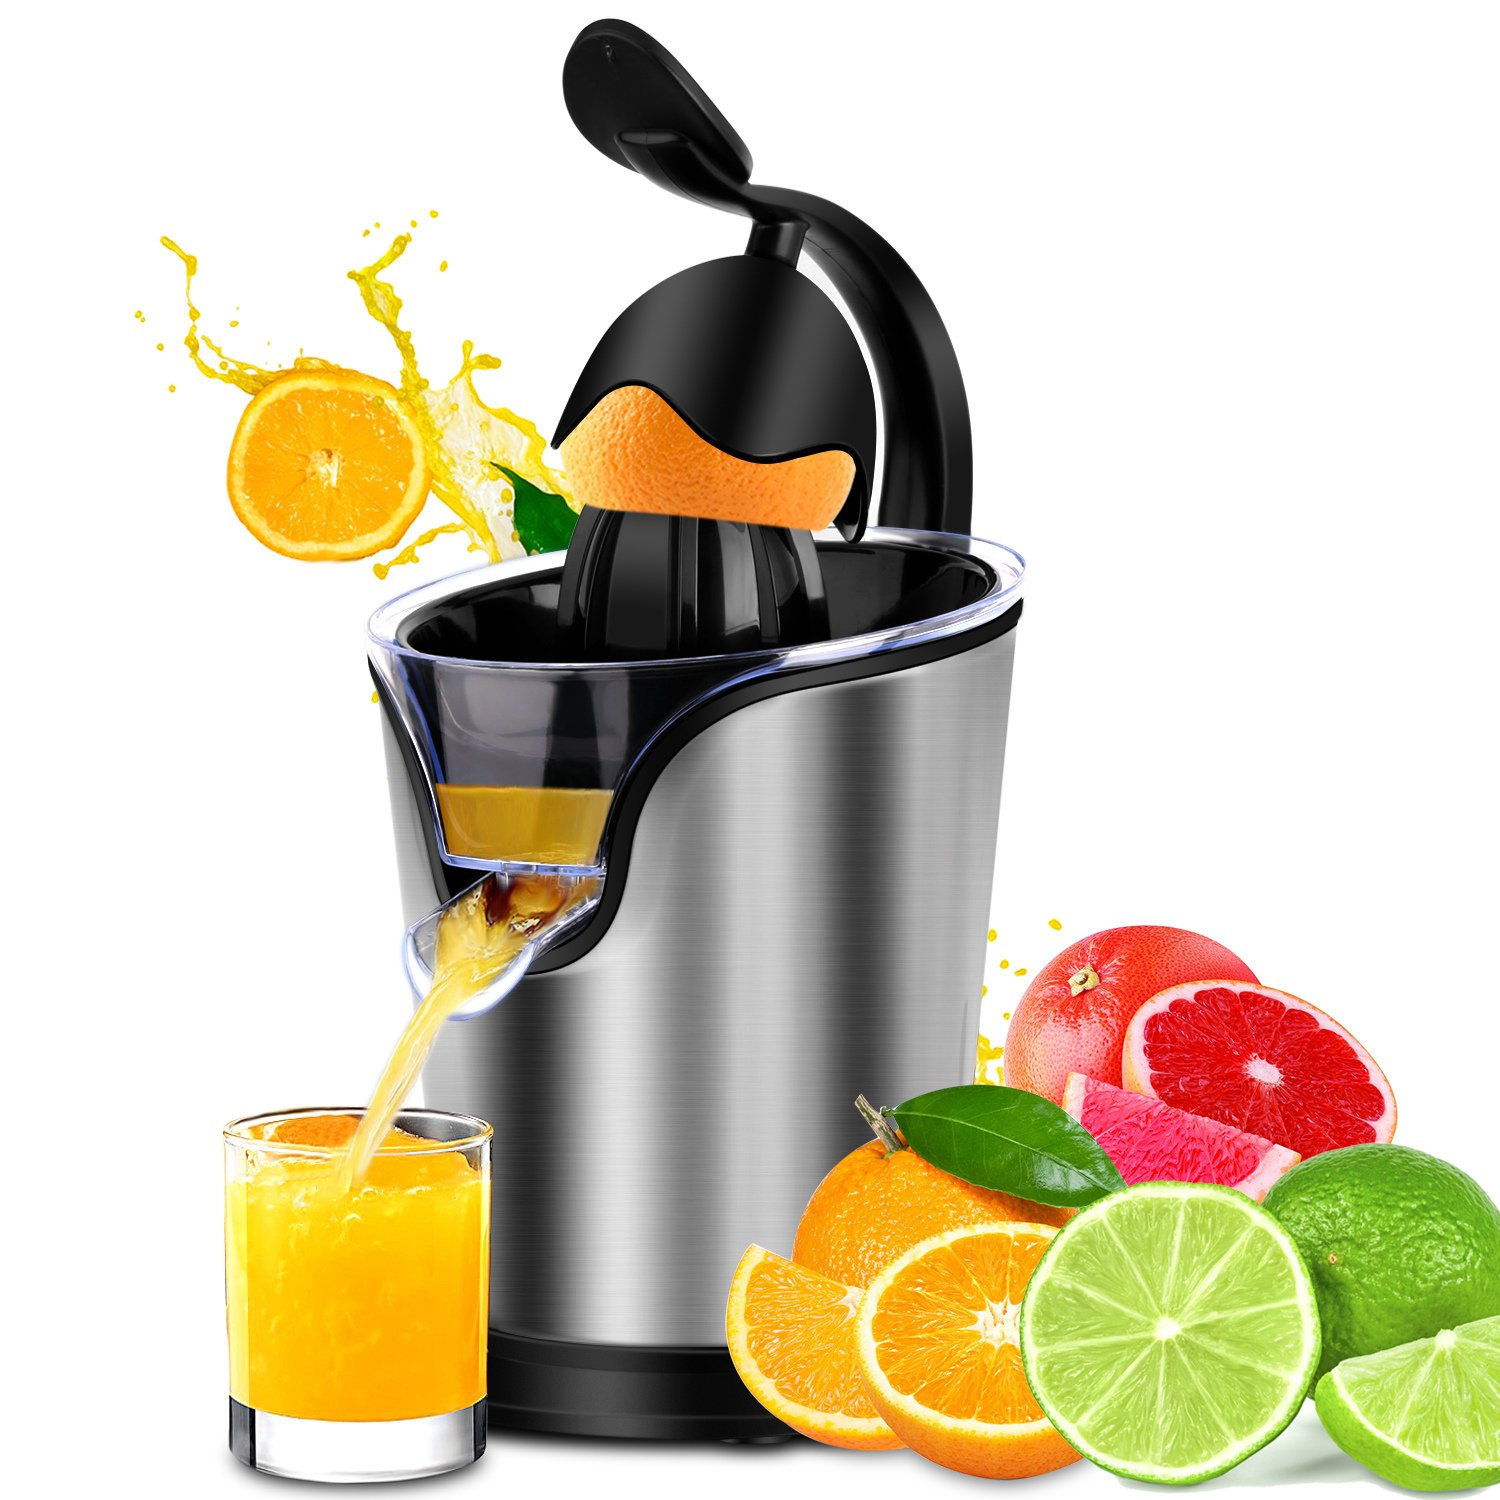 Citrus Juicer Stainless Steel Electric Orange Citrus Juicer Extractor Pulp Control Squeezer Machine [Ultra Quiet] [Precision of a Hand-press] with the Direct Drive Motor by SOWTECH